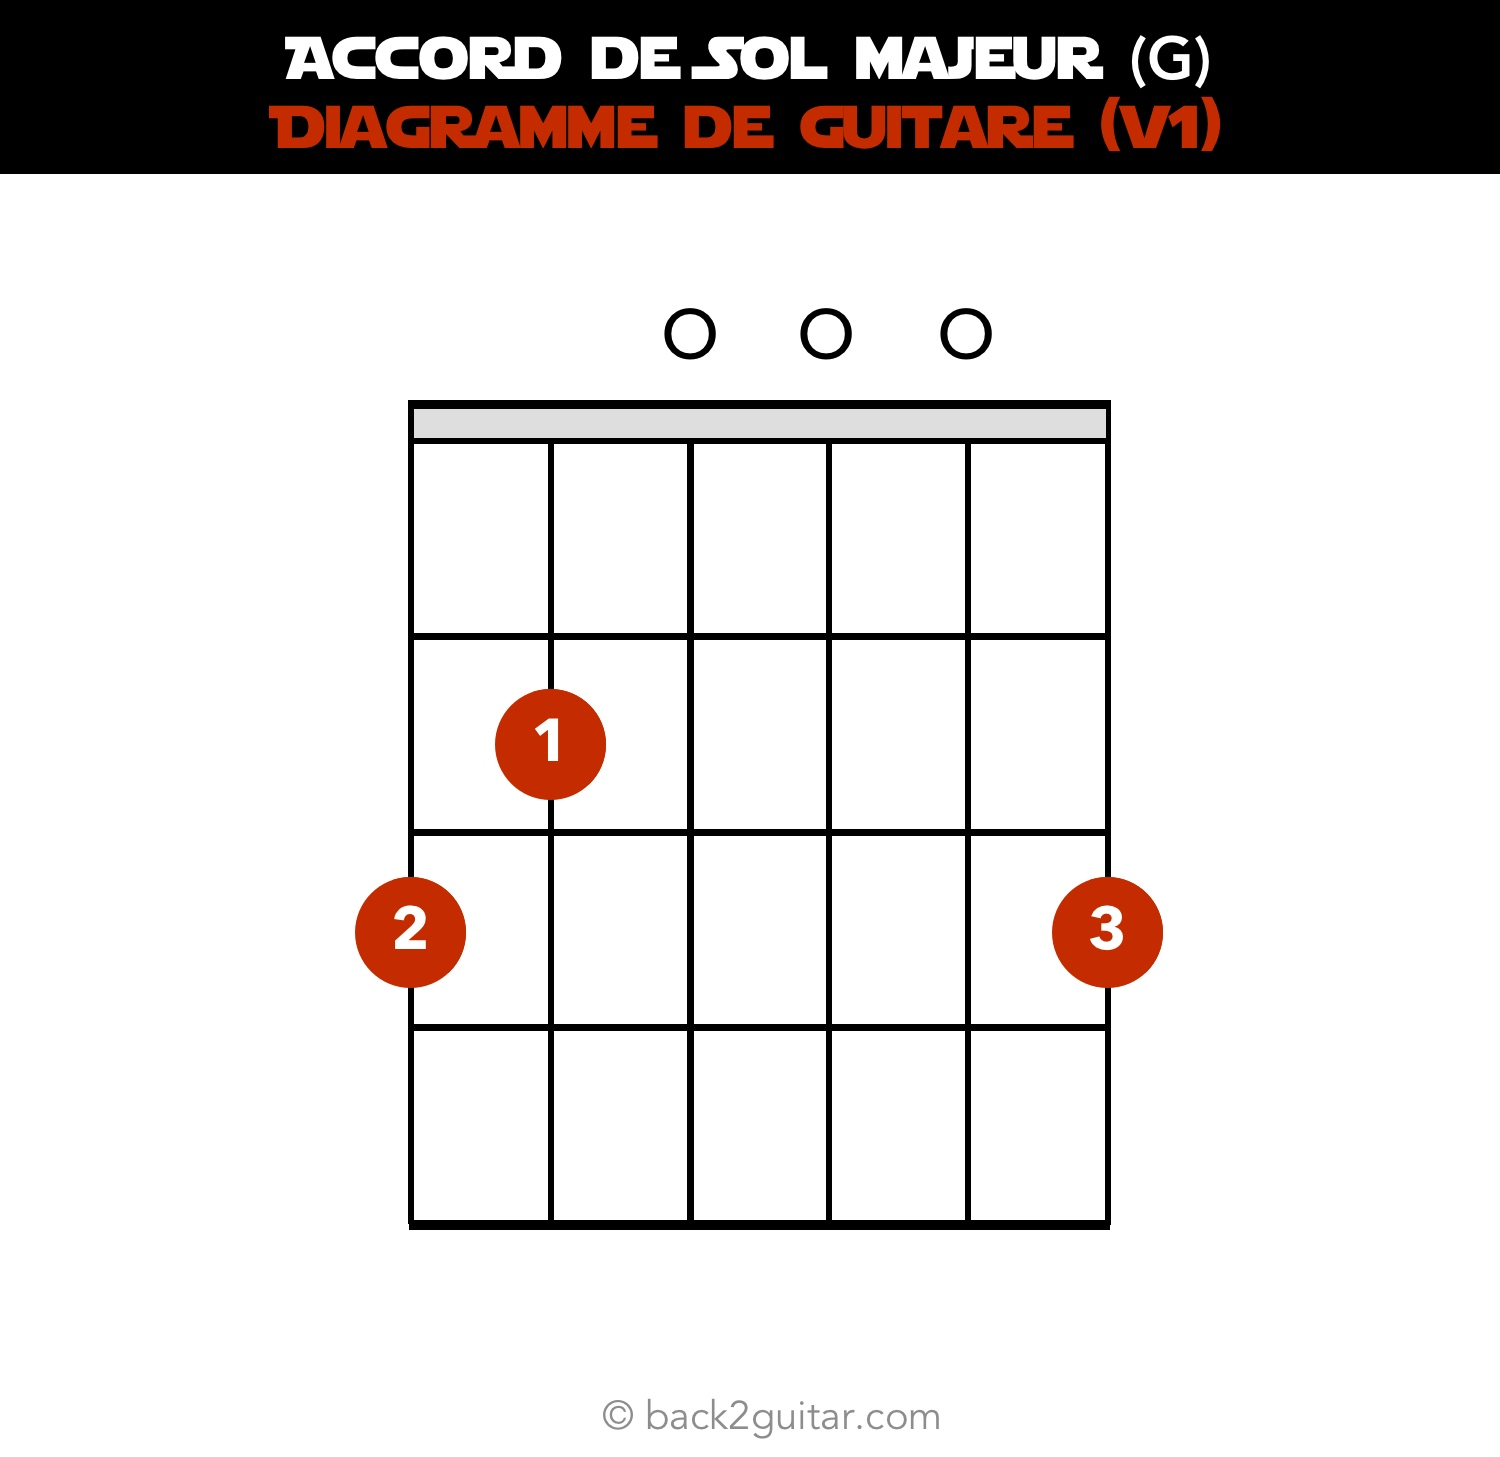 accord guitare sol majeur diagramme guitare V1 (G)